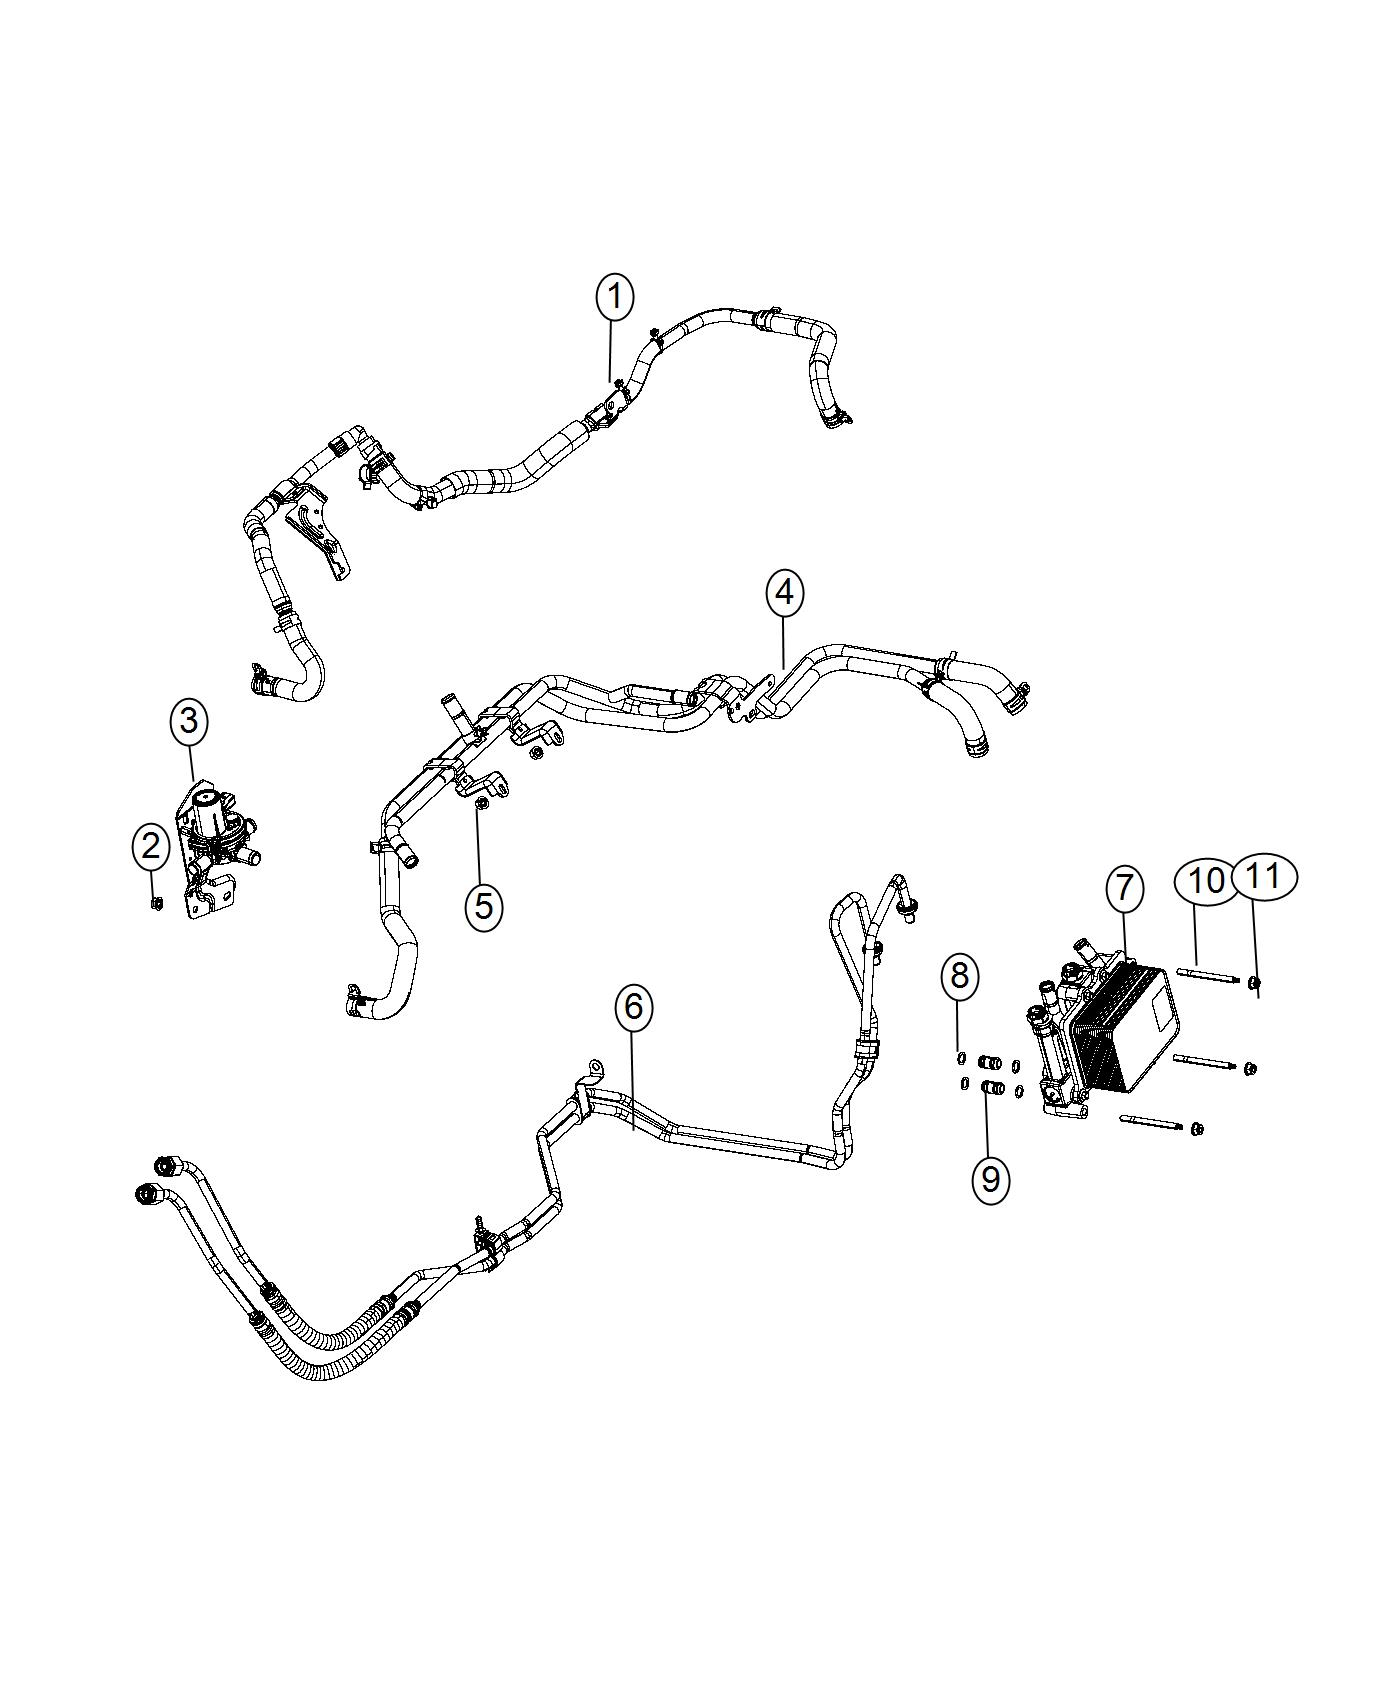 Ram Hose Heater Core Used For Supply And